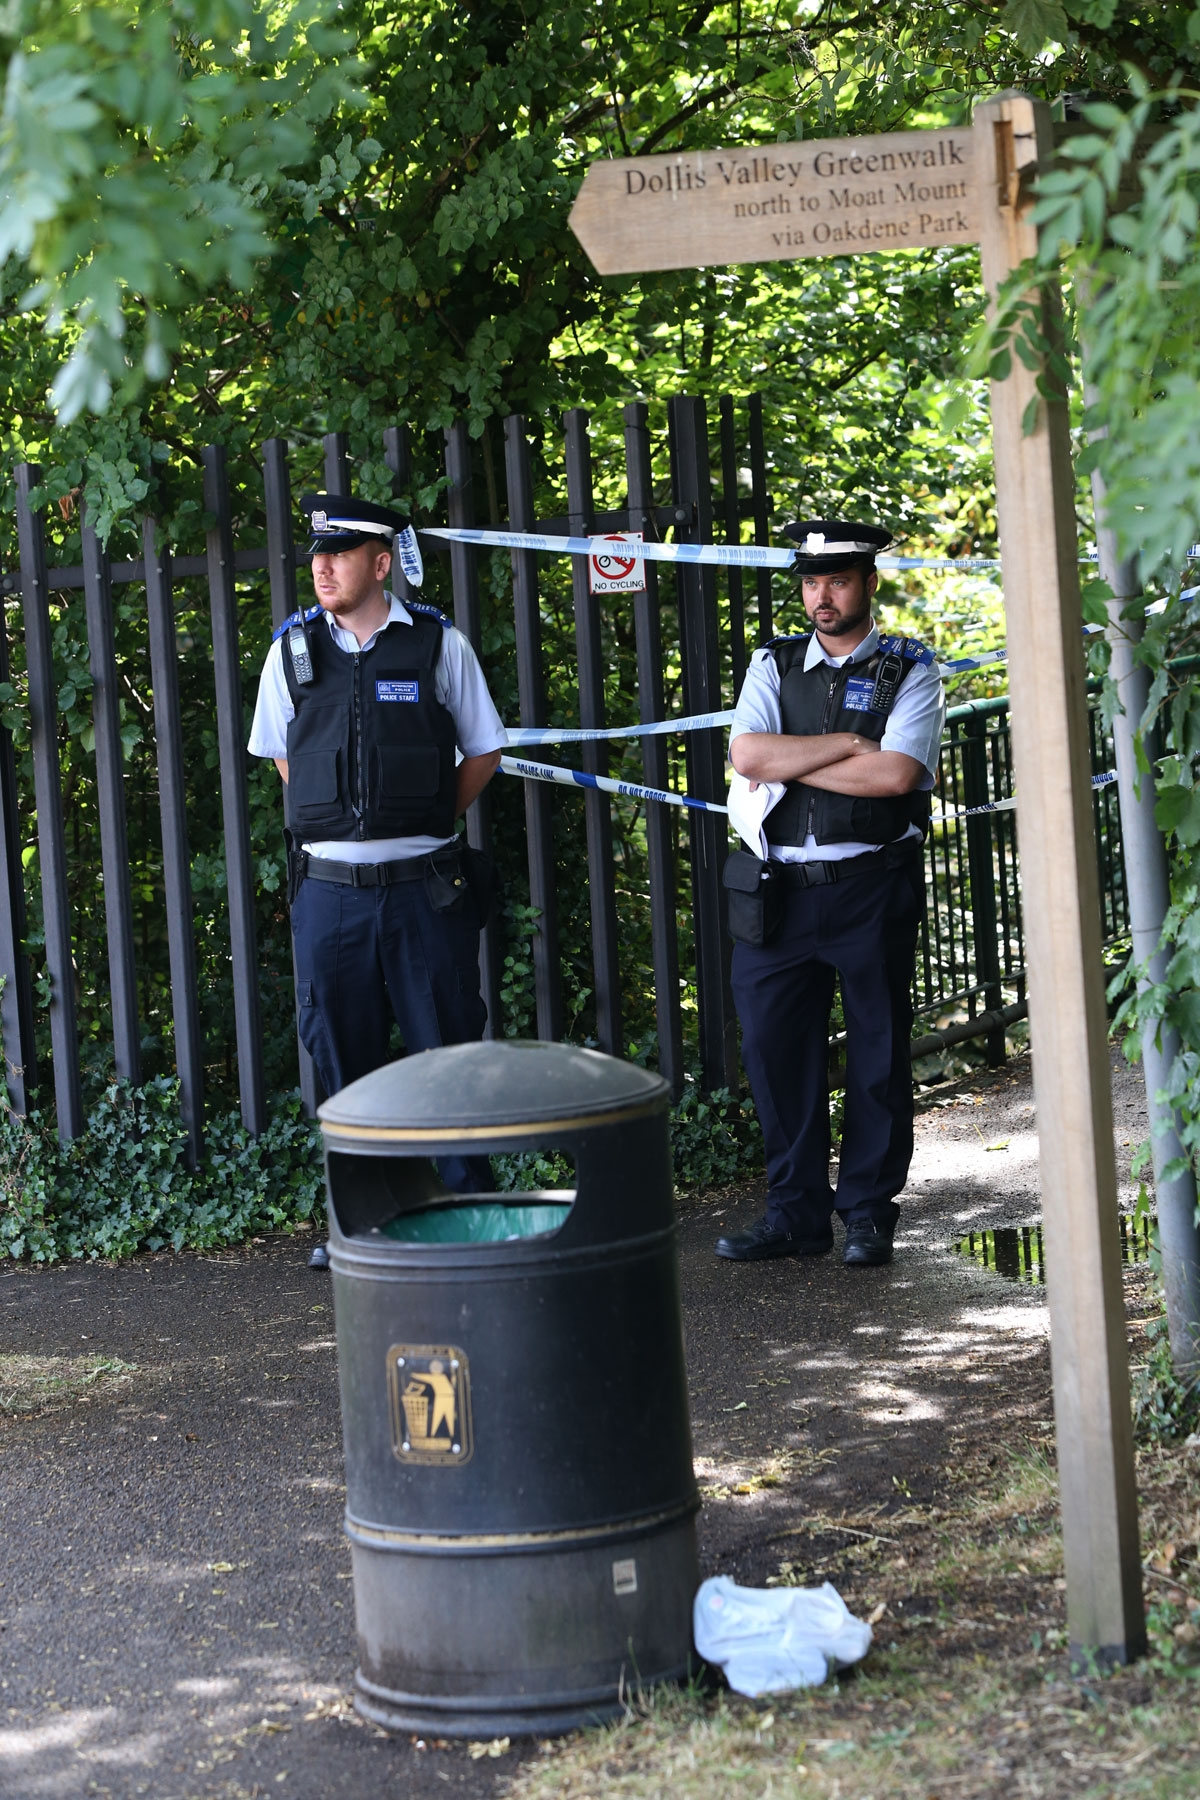 Police cordon off the scene where Miss Kovacs's body was found.